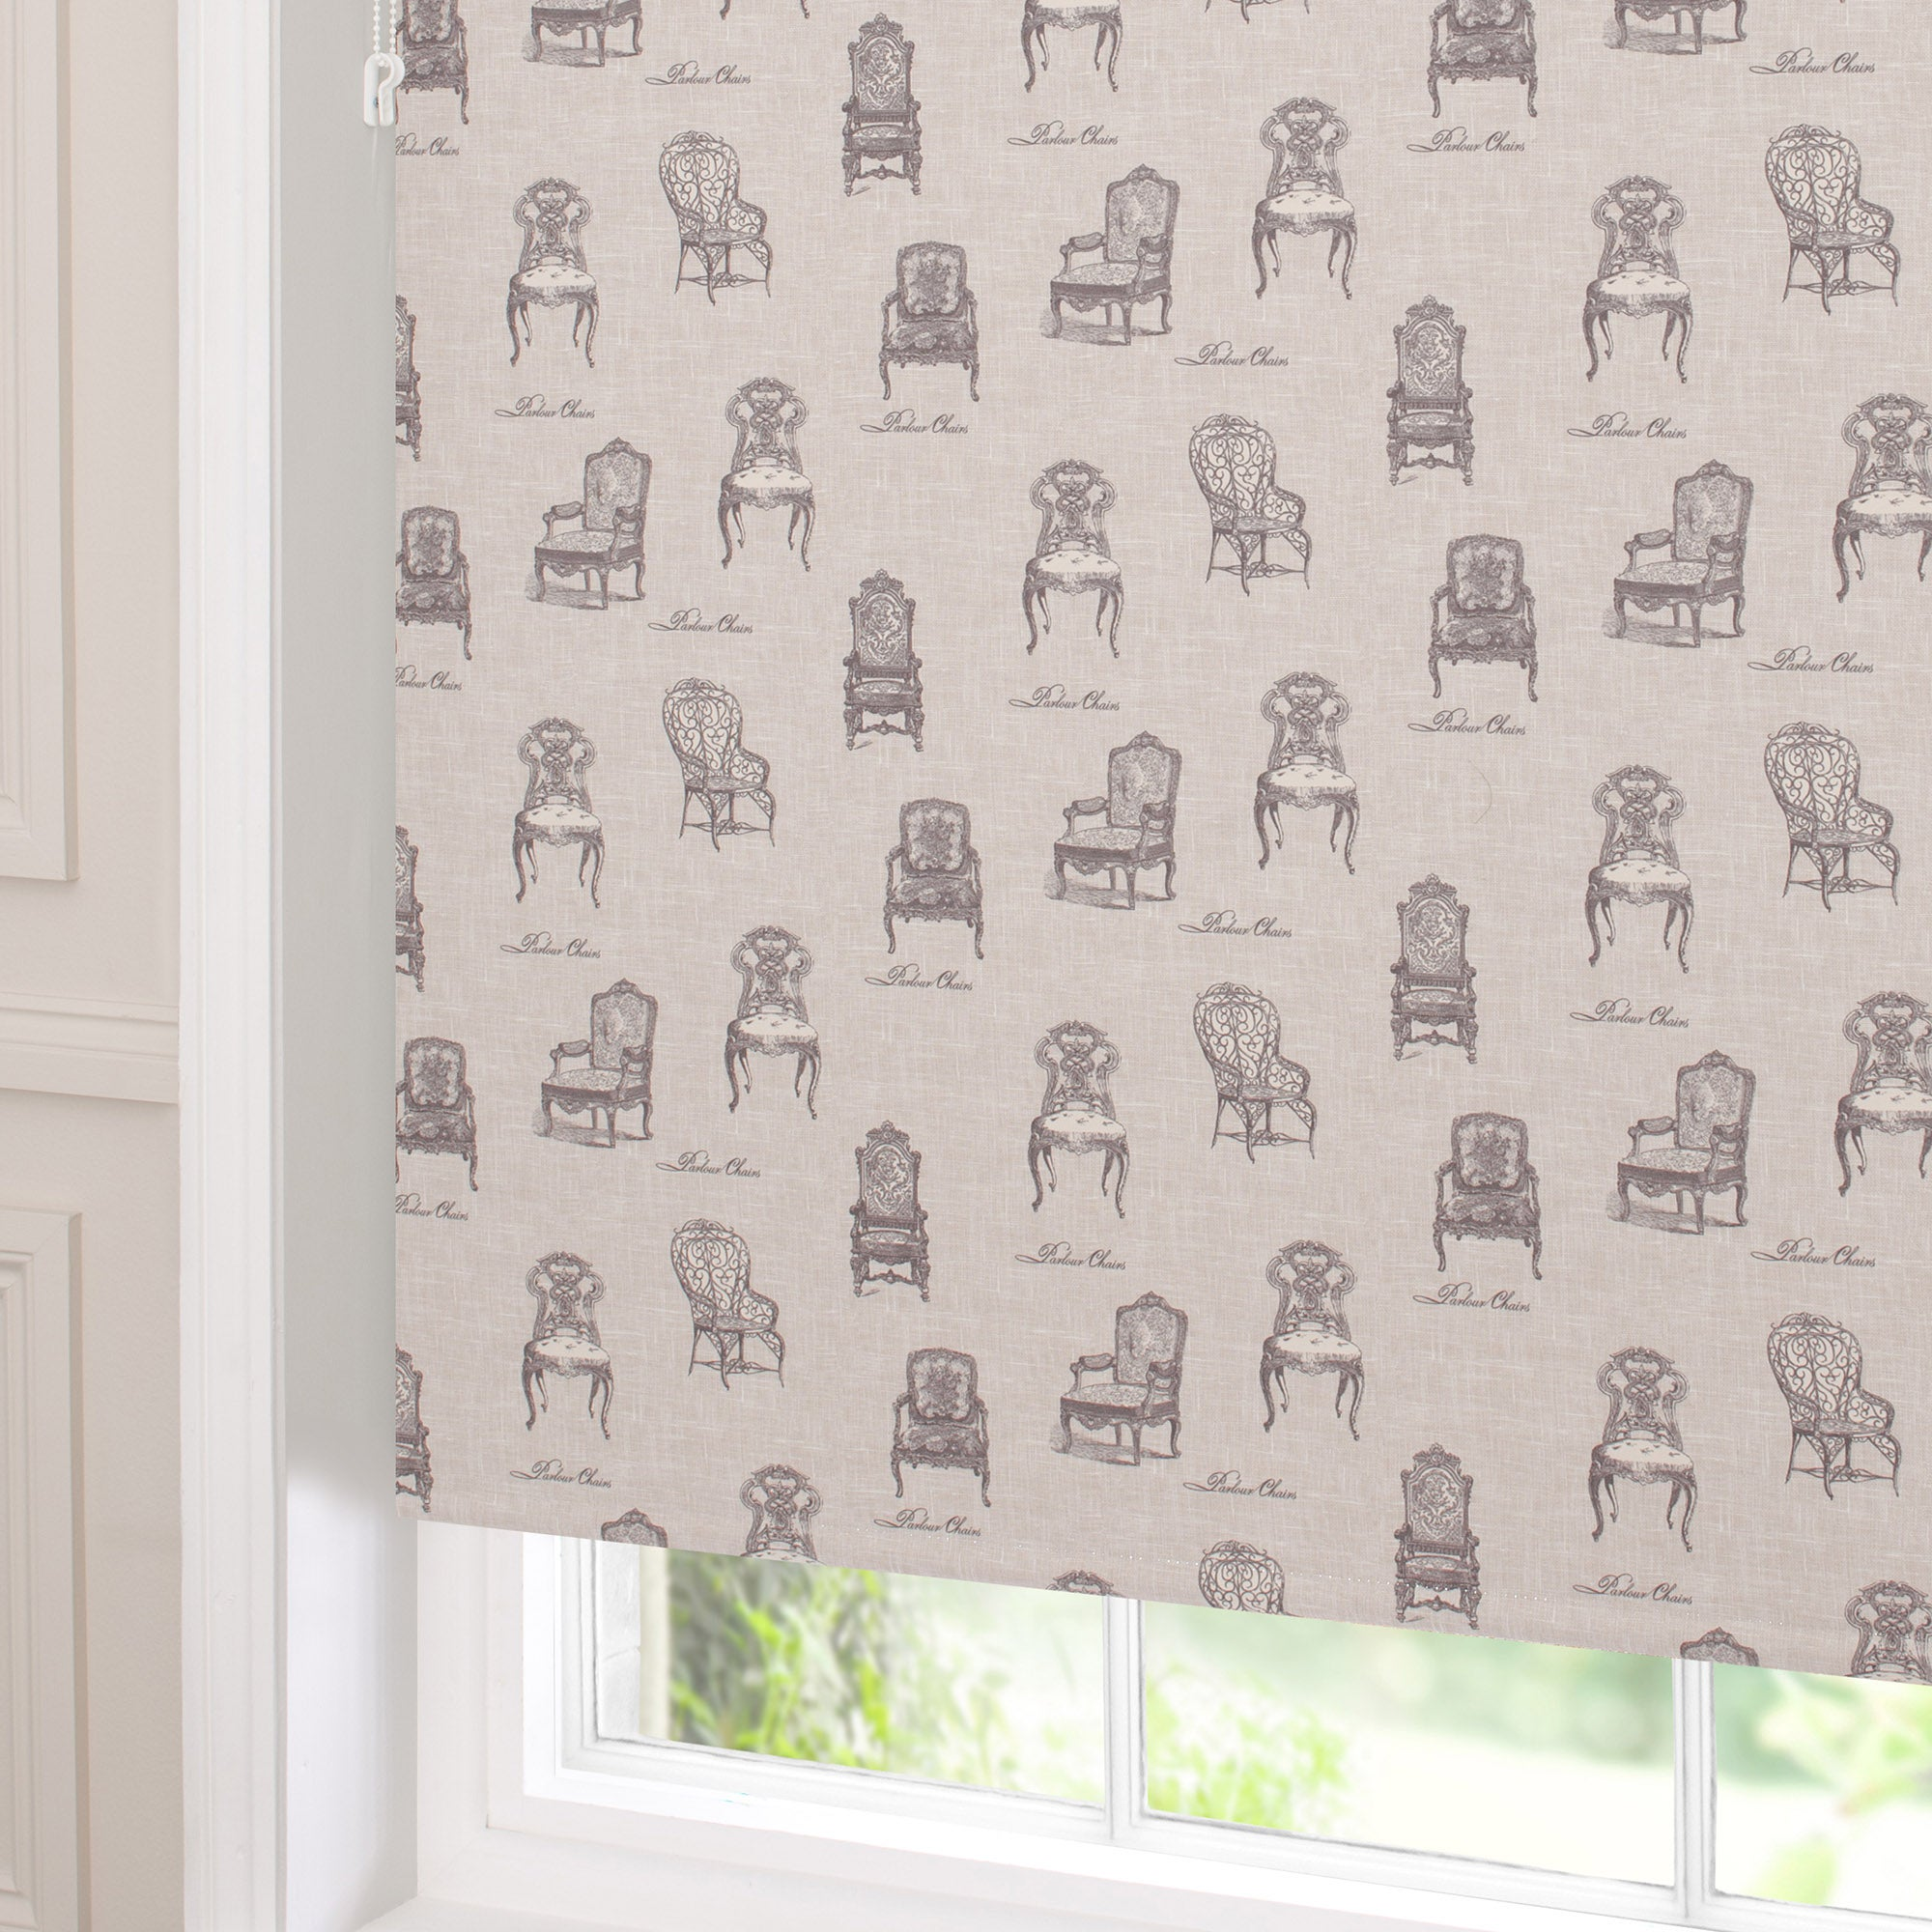 vintage chairs blackout roller blind dunelm. Black Bedroom Furniture Sets. Home Design Ideas